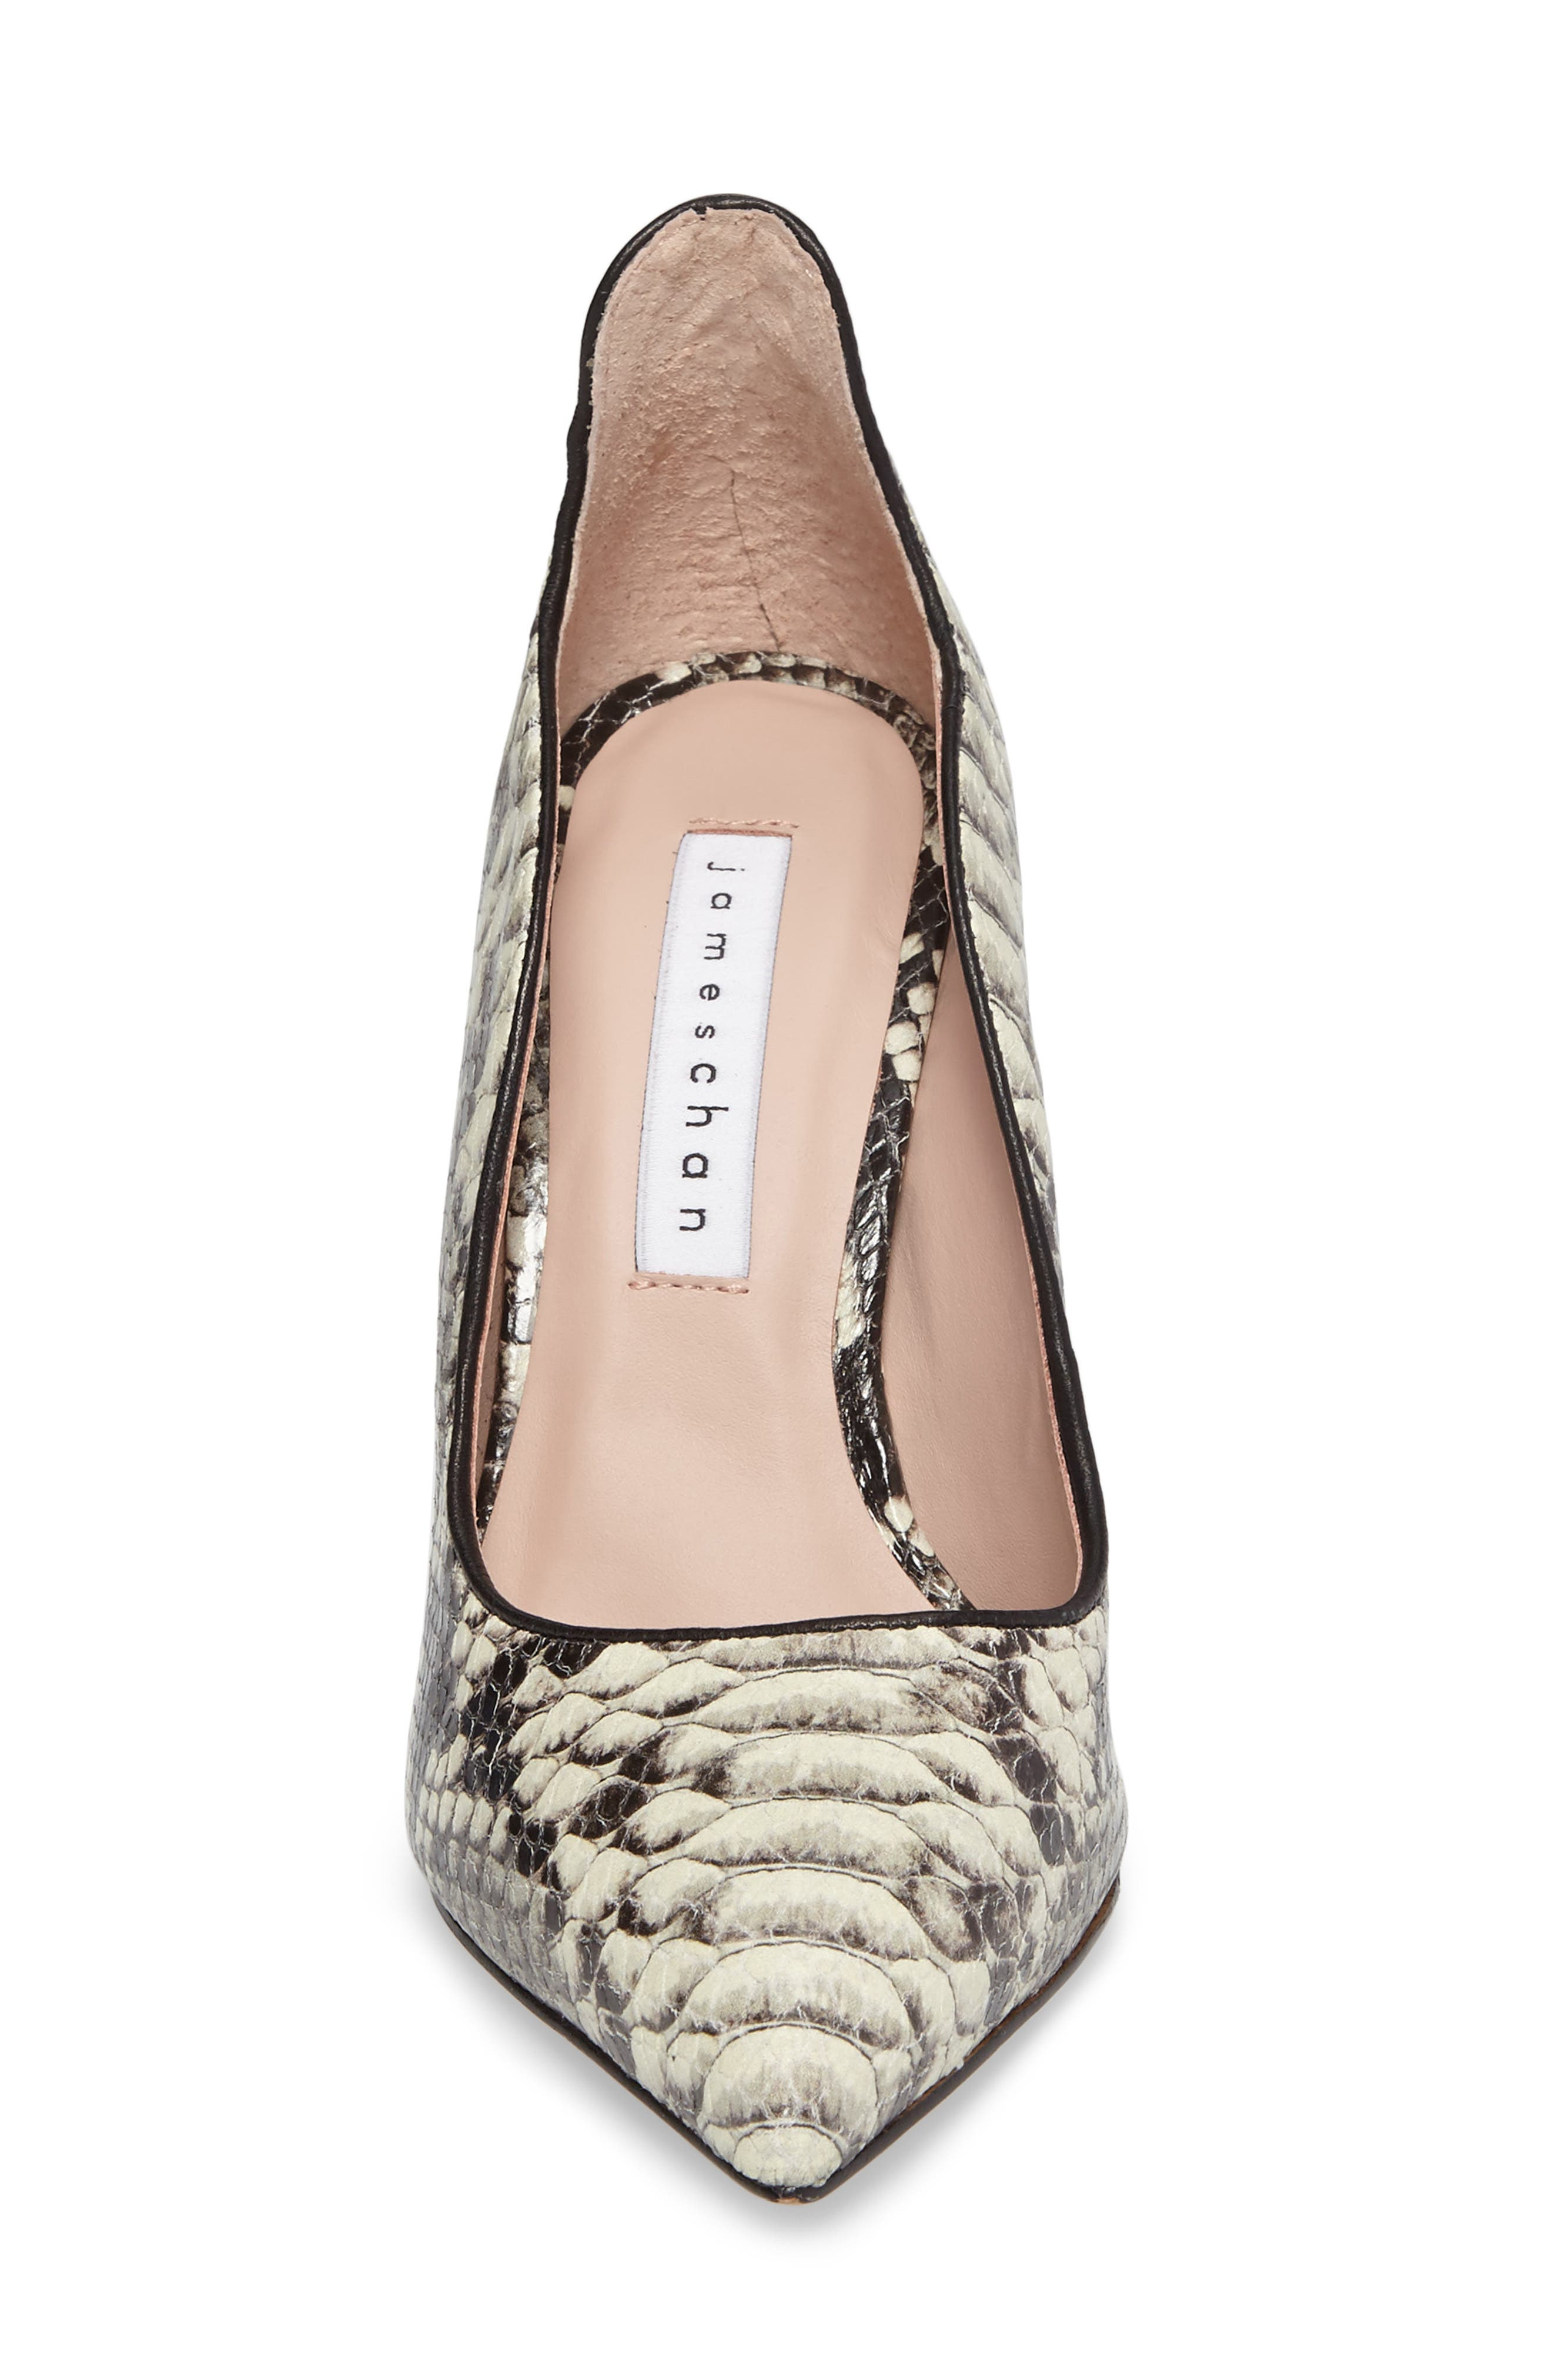 Anika II Curved Pump,                             Alternate thumbnail 4, color,                             Natural Embossed Leather